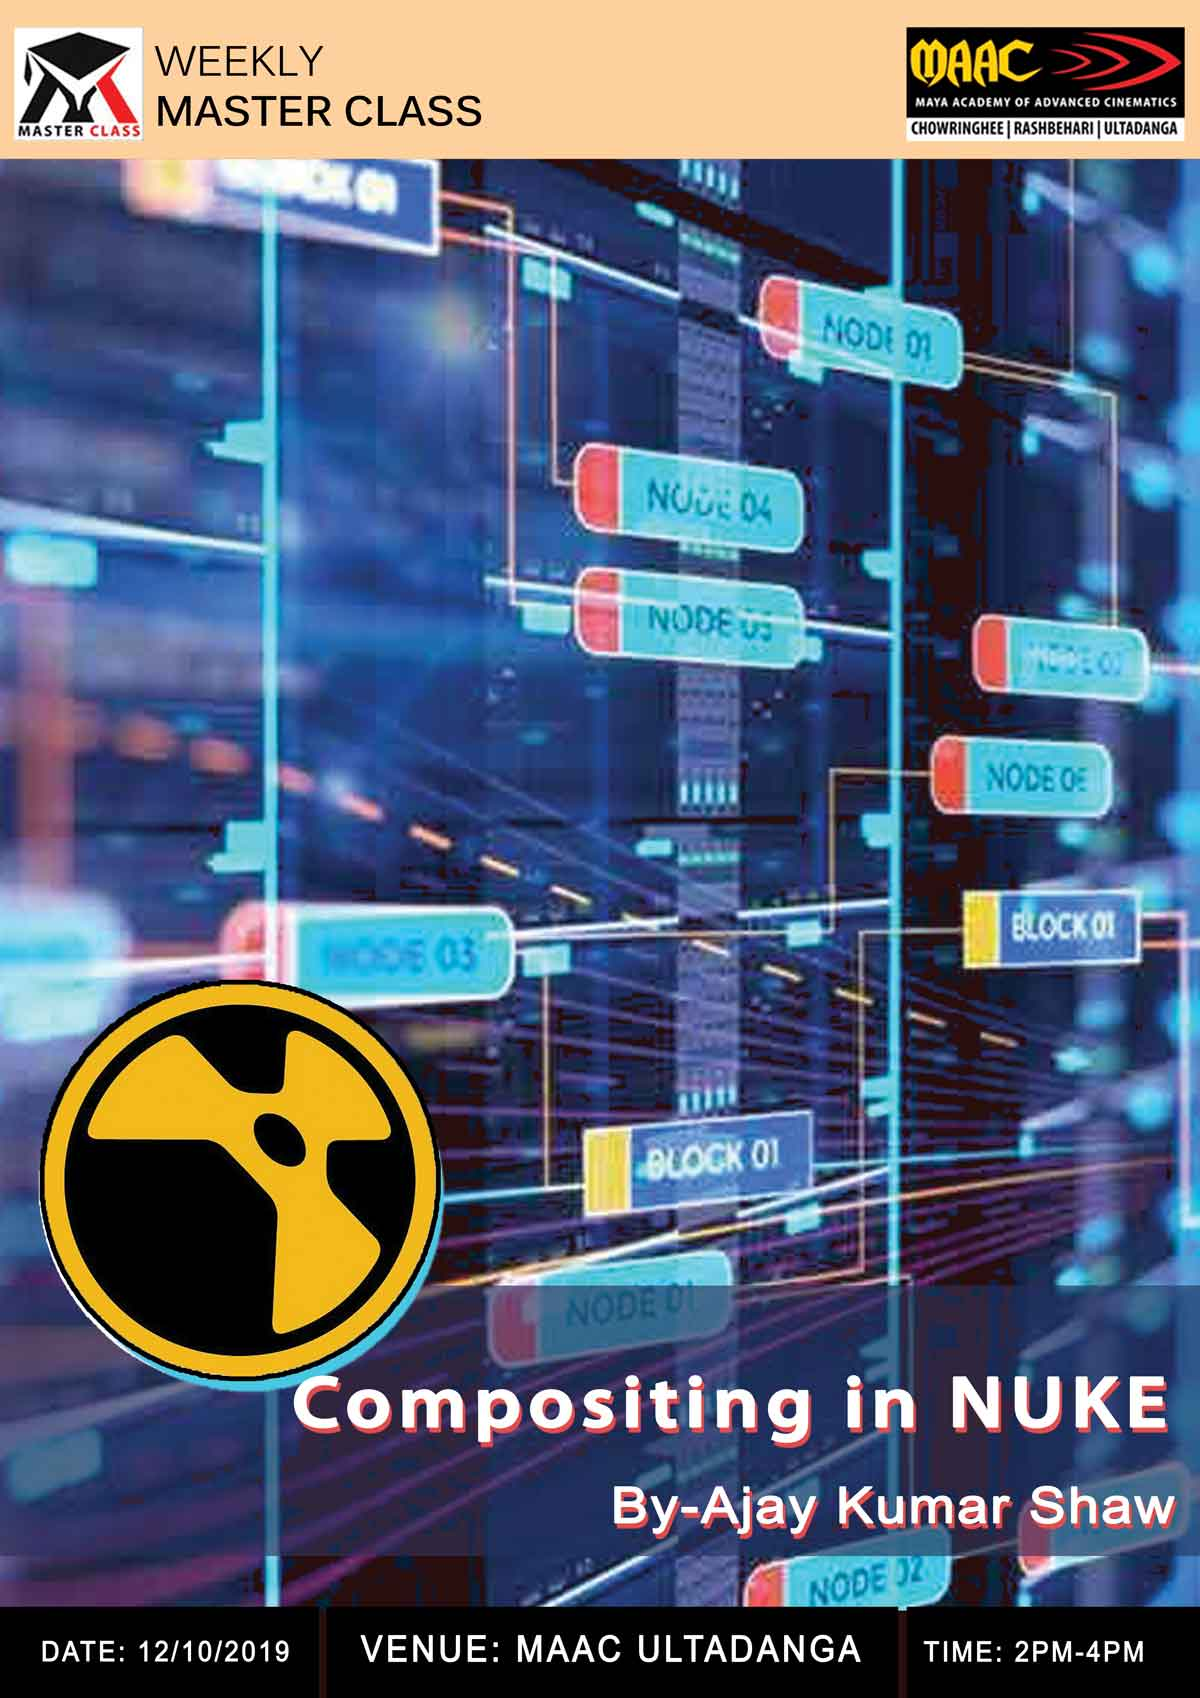 Weekly Master Class on Compositing in Nuke